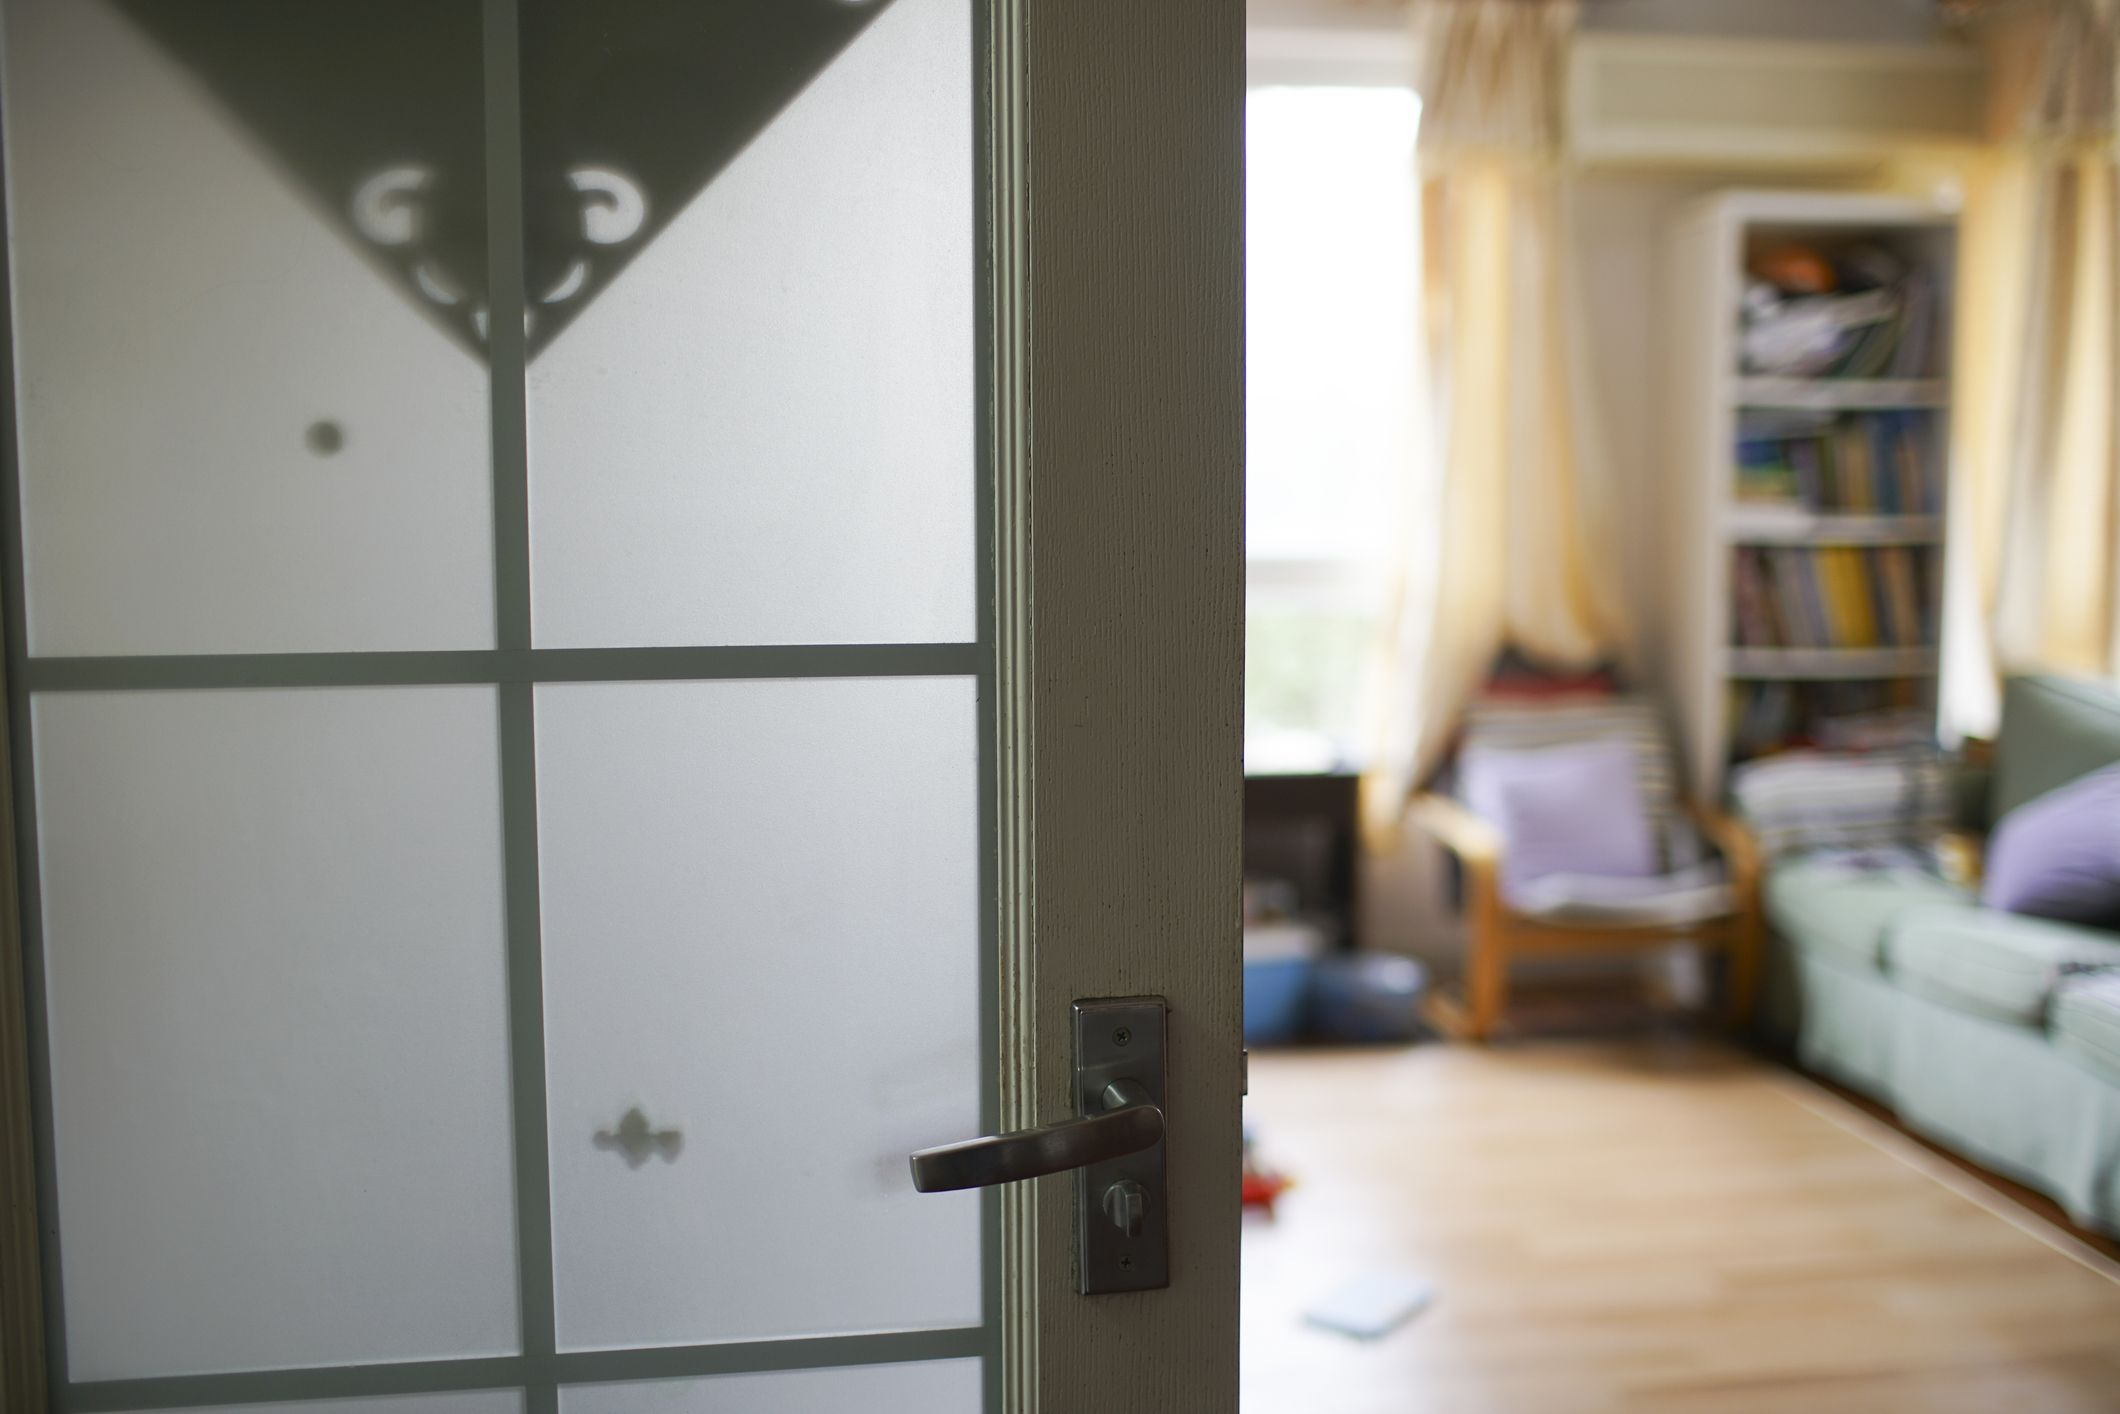 The 10 most common superstitious house habits revealed